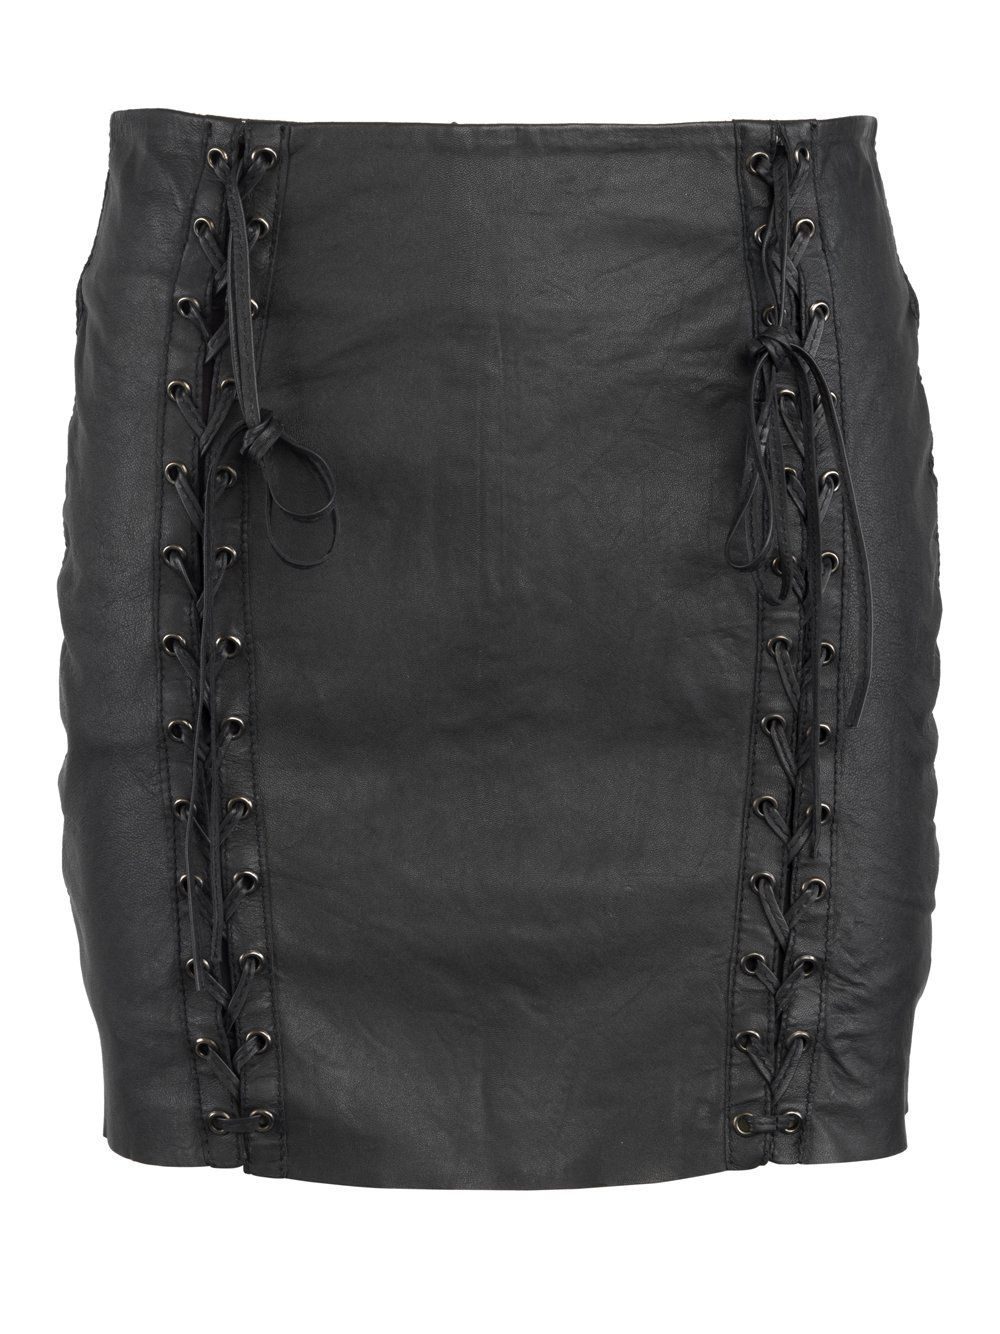 Muubaa Tsira Laced Leather Skirt in Black | All Things Leather ...